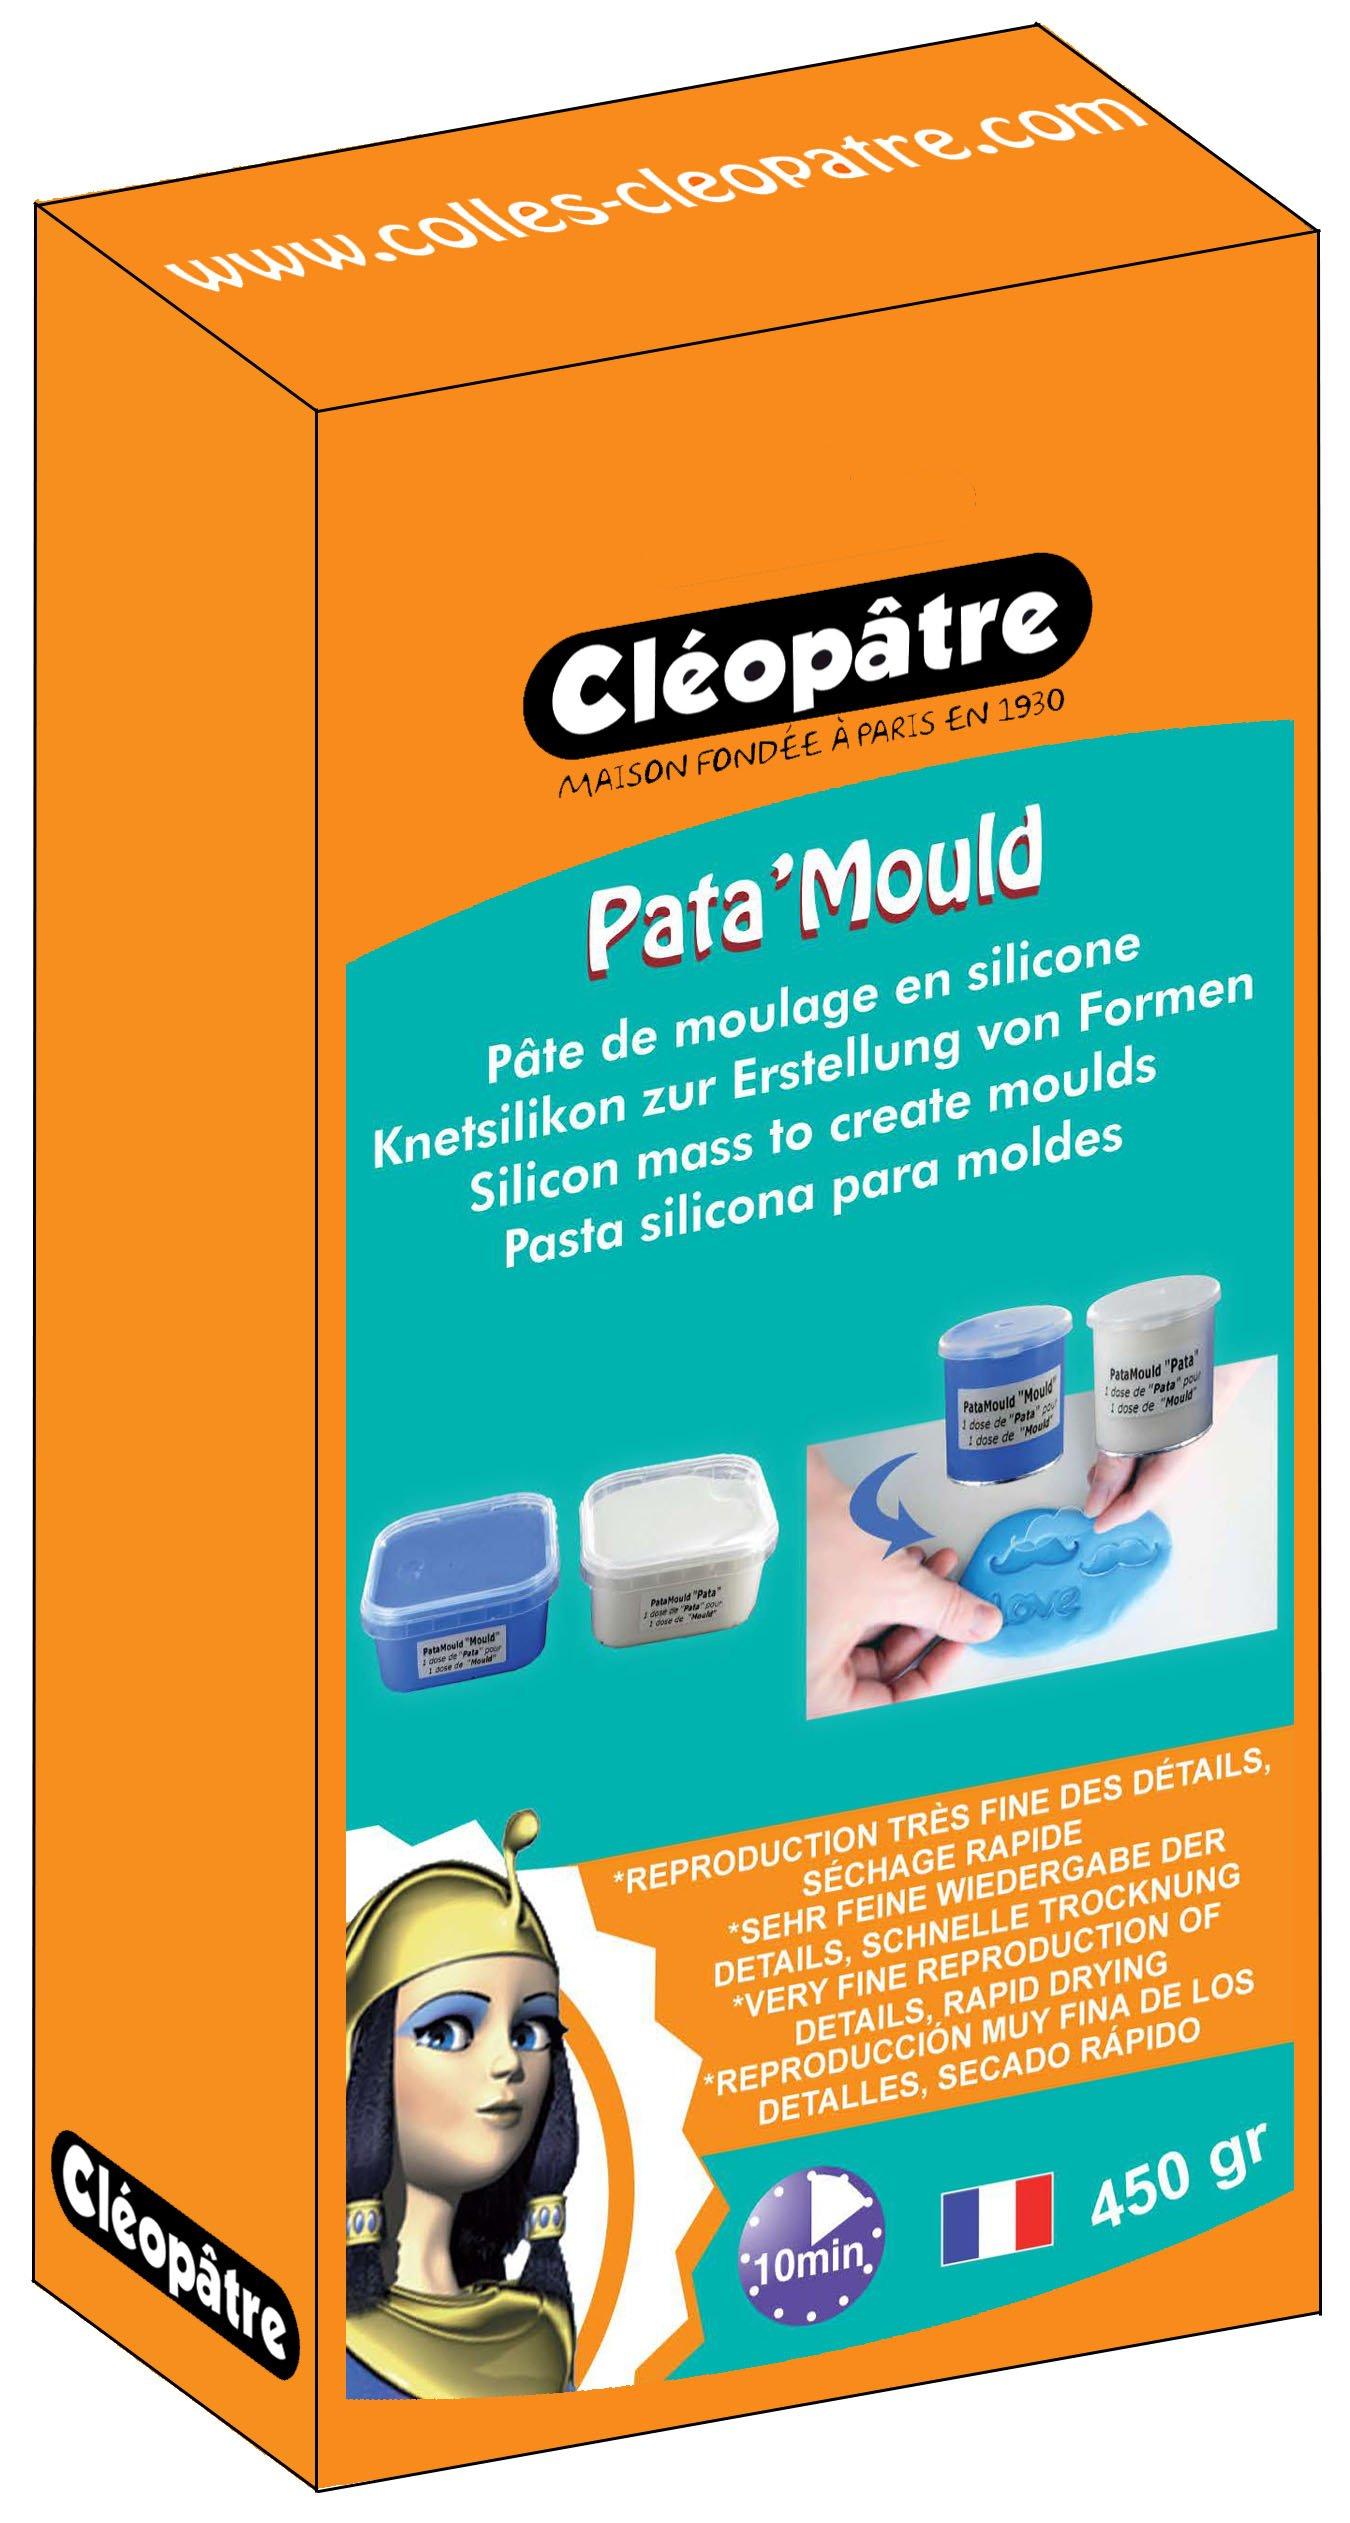 Cléopâtre LCC22 HS-450-P2 E1 2 Silicone Moulding Paste, Parts, Learning Materials Blue/White